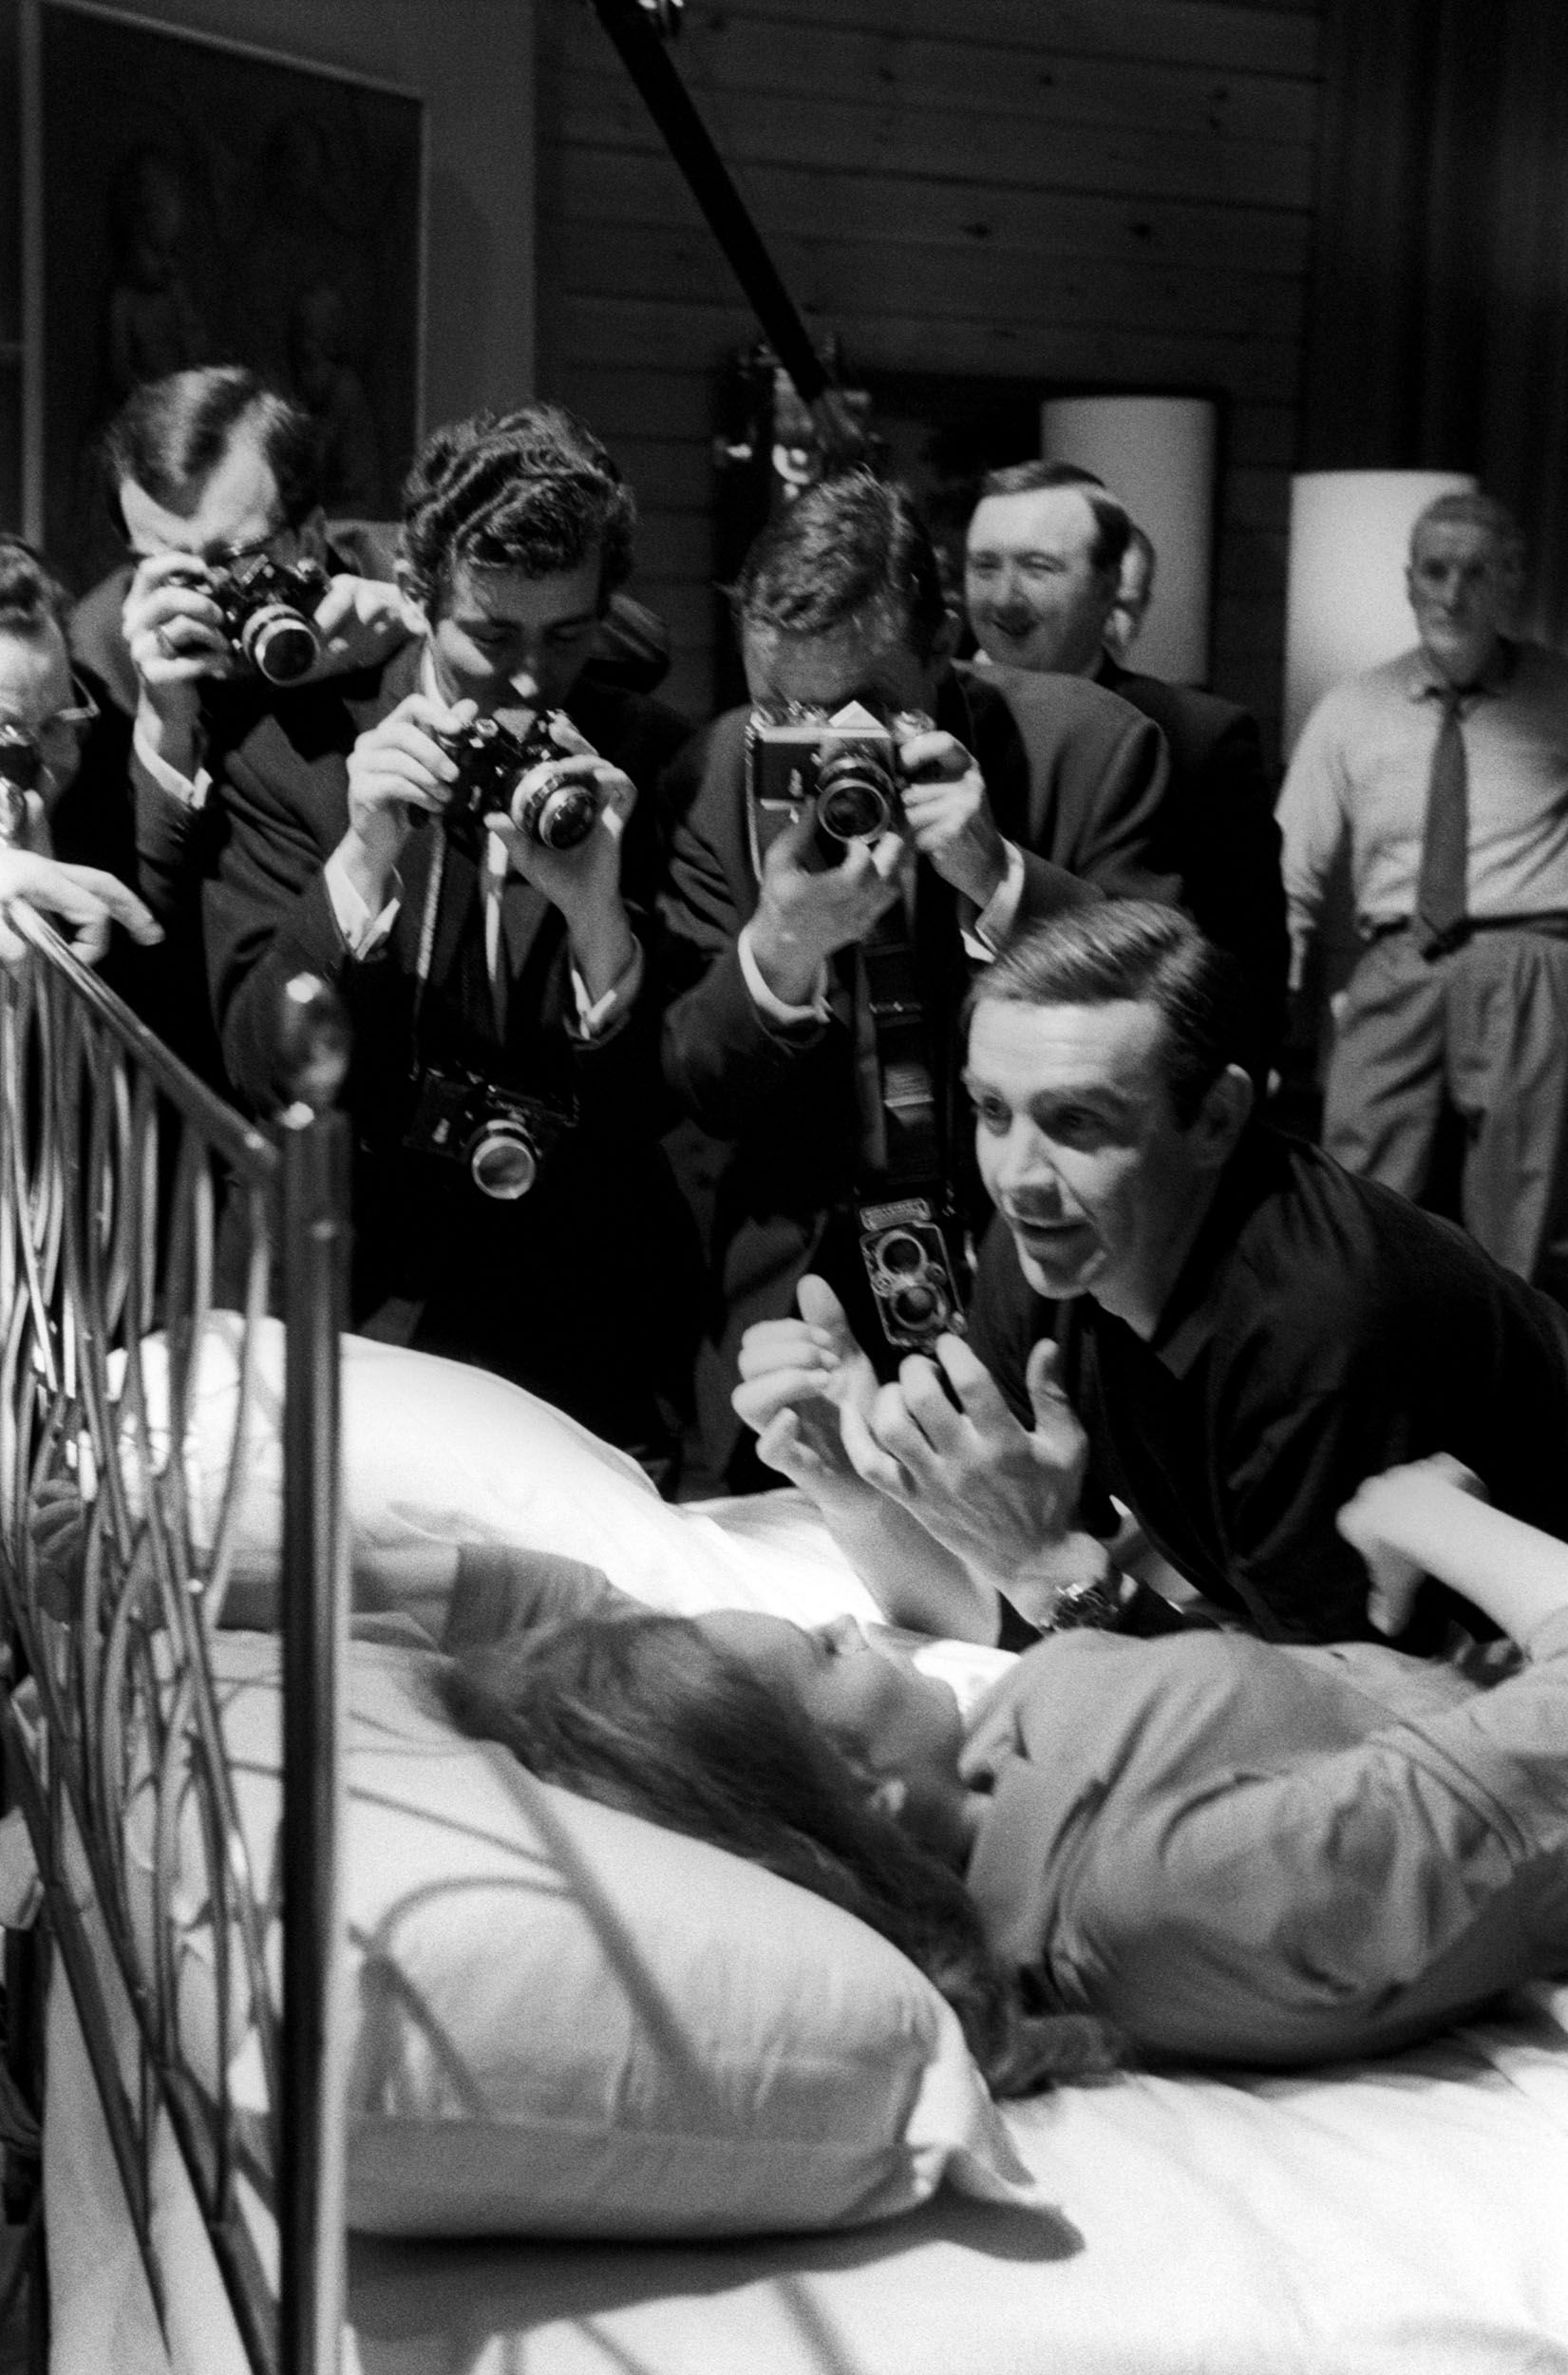 Sean Connery and Luciana Paluzzi are besieged by photographers during the shooting of a hot scene from Thunderball.